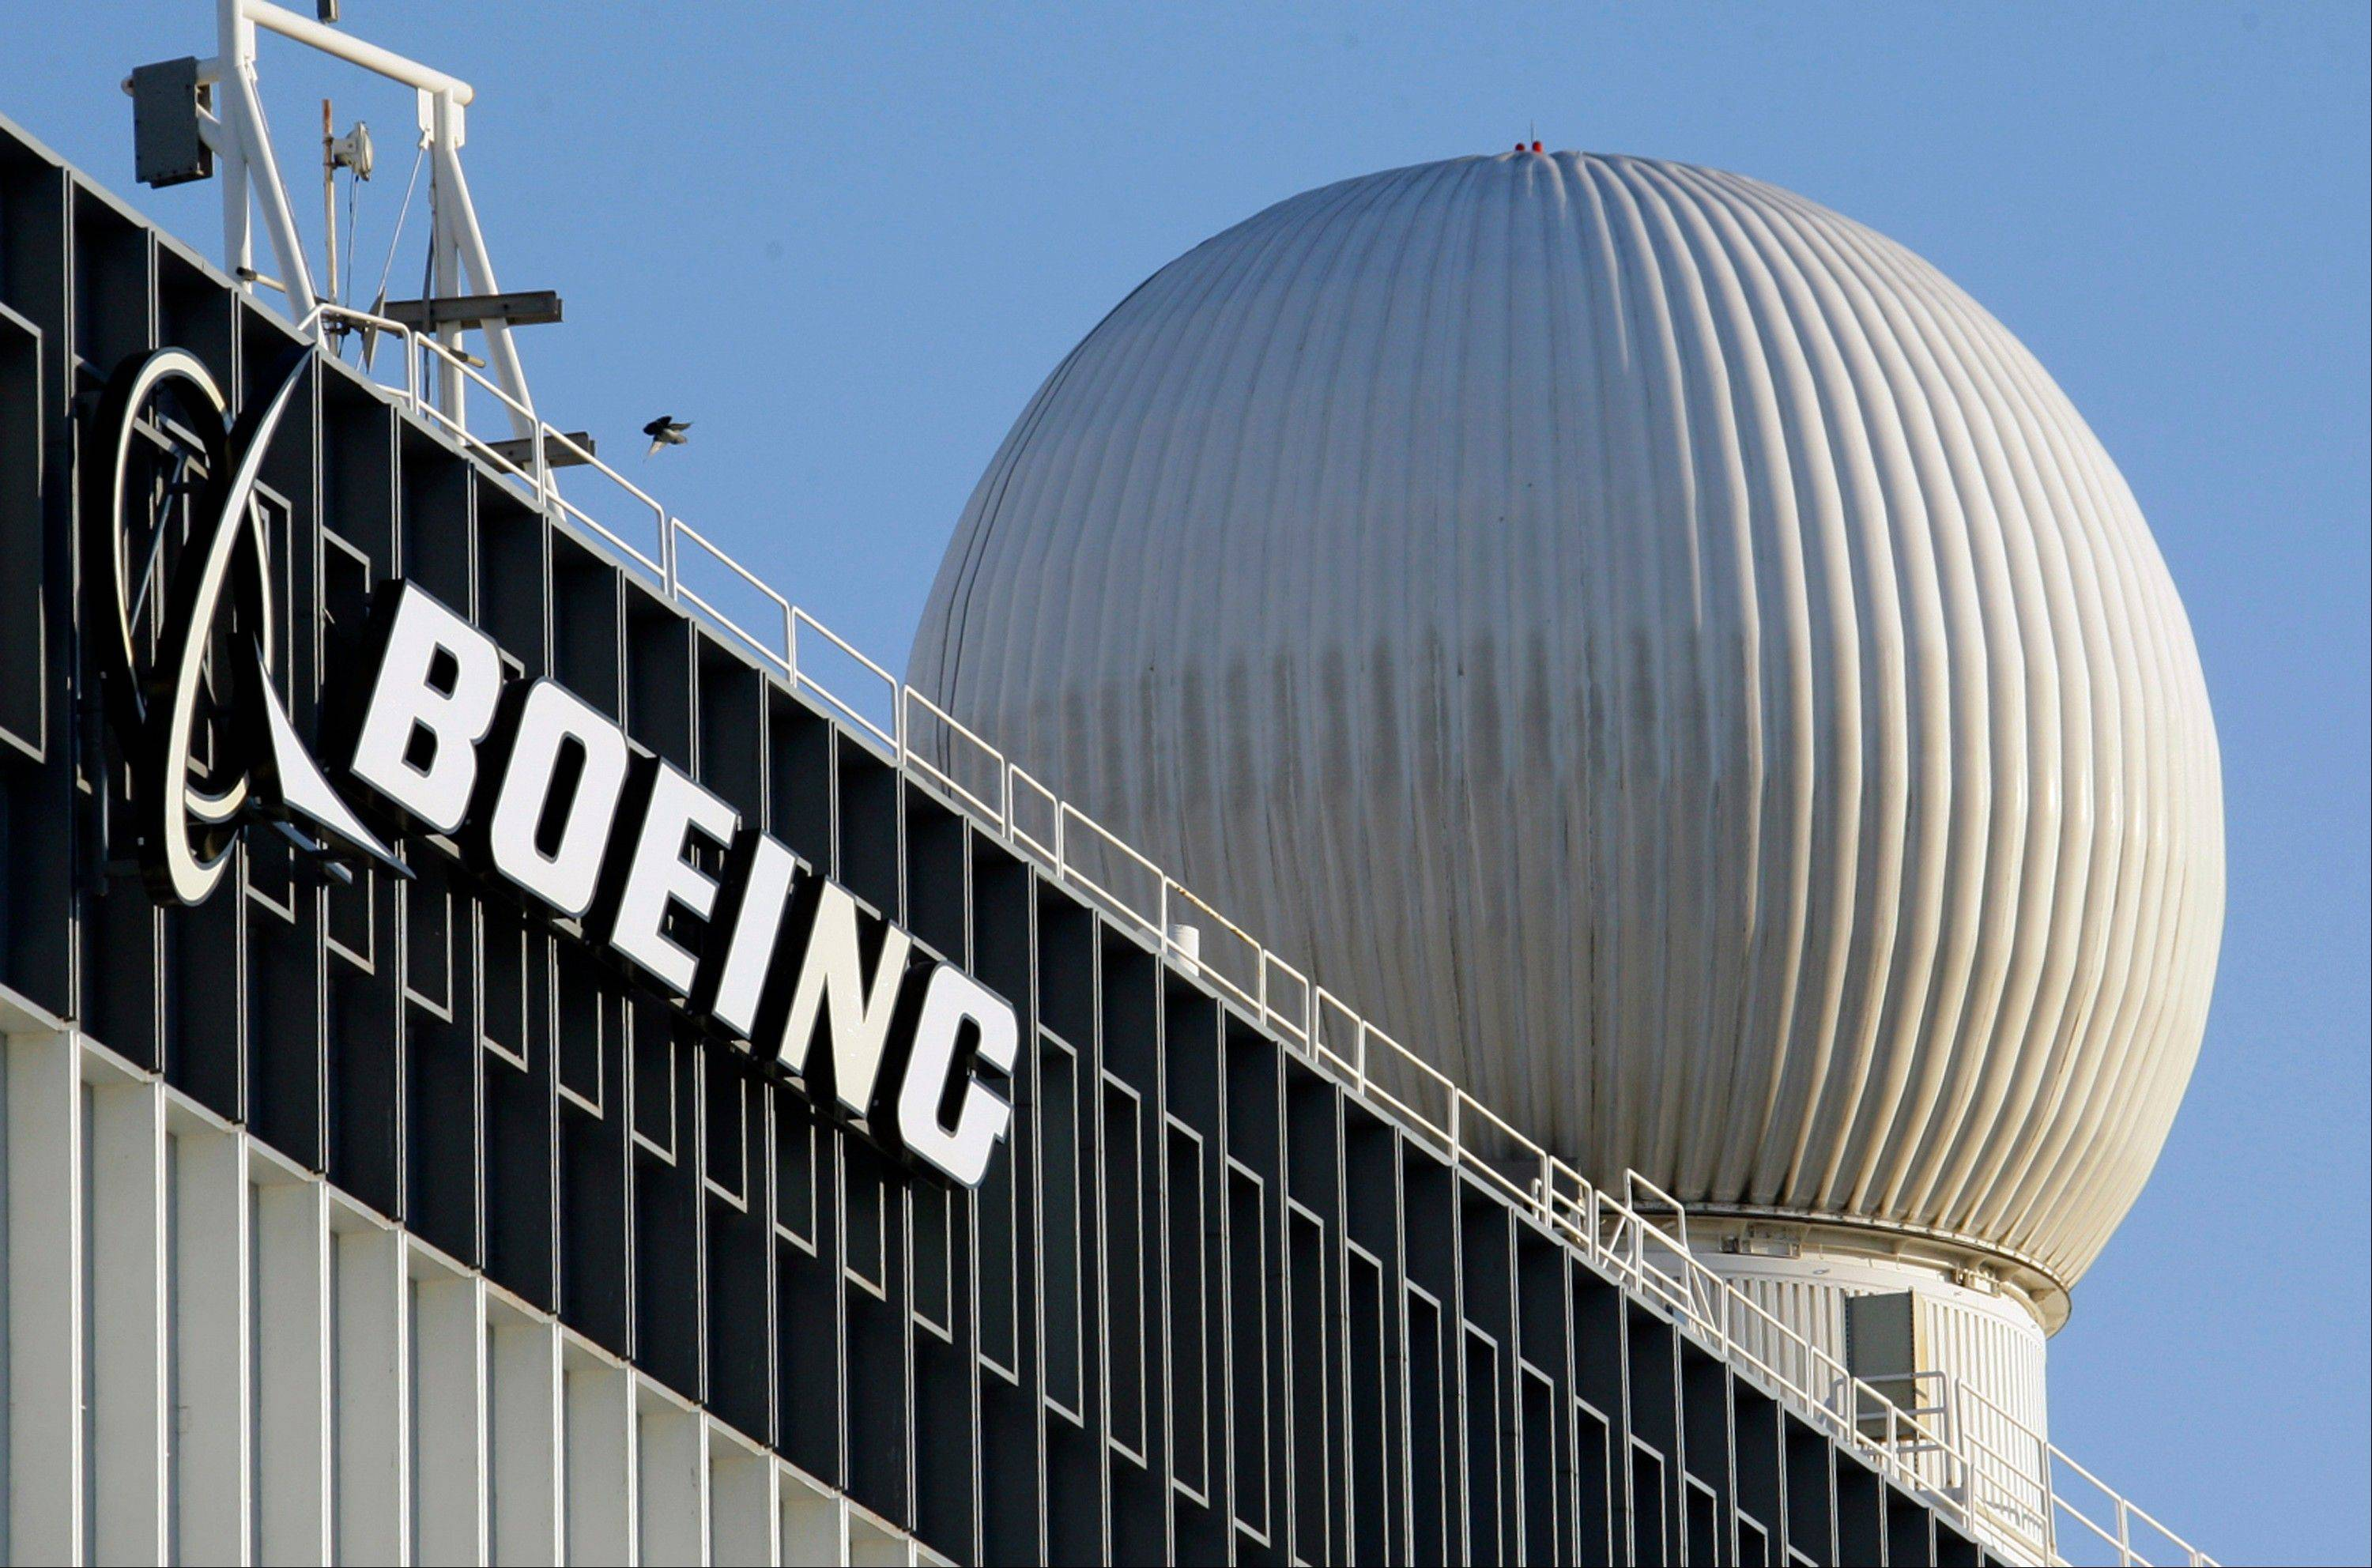 Chicago-based aircraft maker Boeing Co., Etihad Airways, the oil company Total and others say they will work together on a program to develop an aviation biofuel industry in the United Arab Emirates.